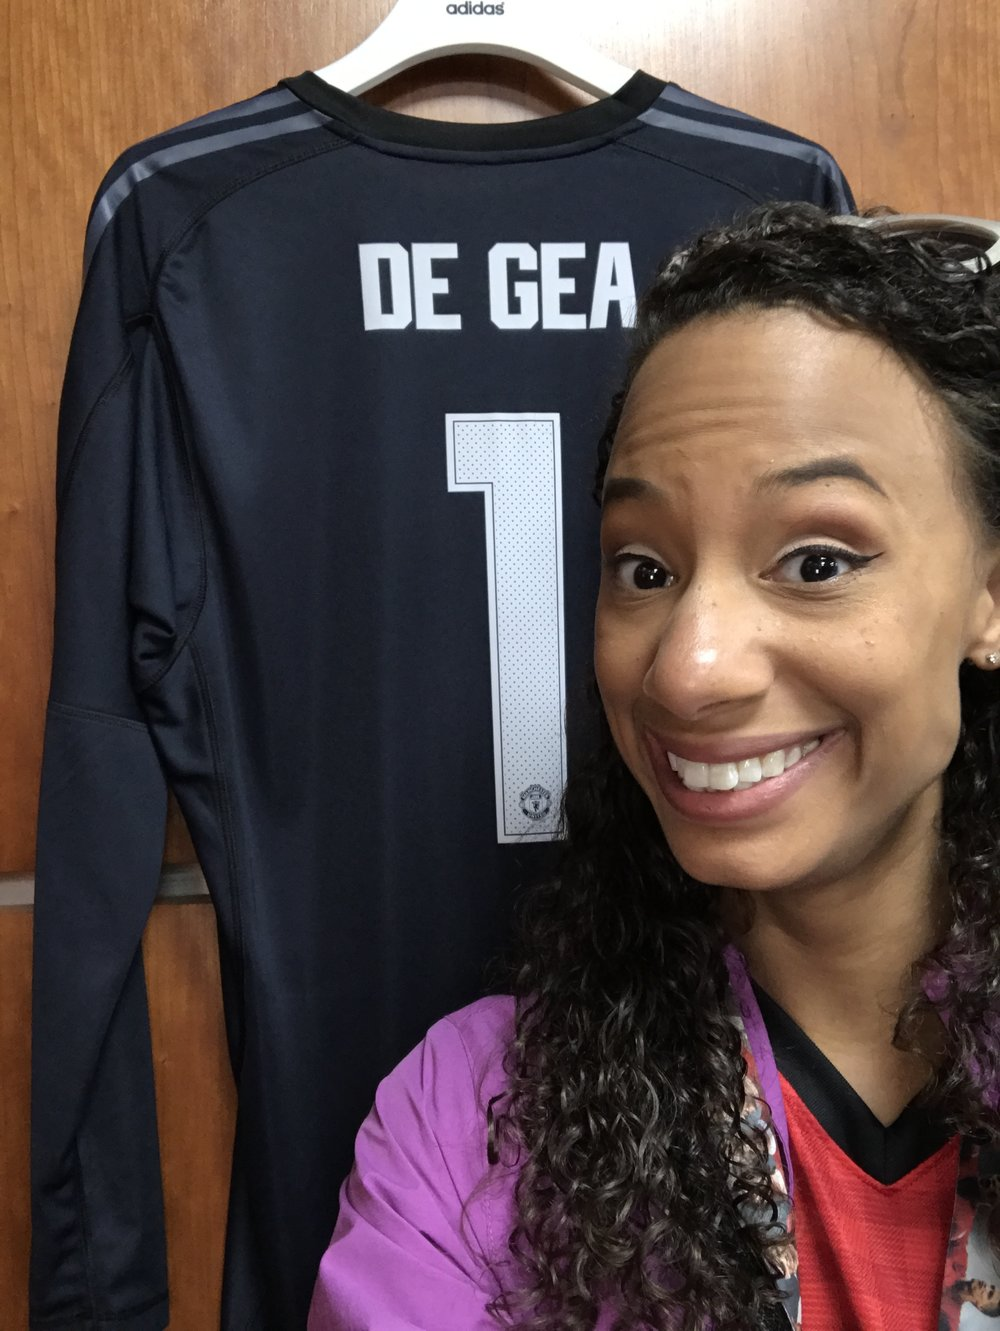 In the players' dressing room with my fave current MU player's jersey